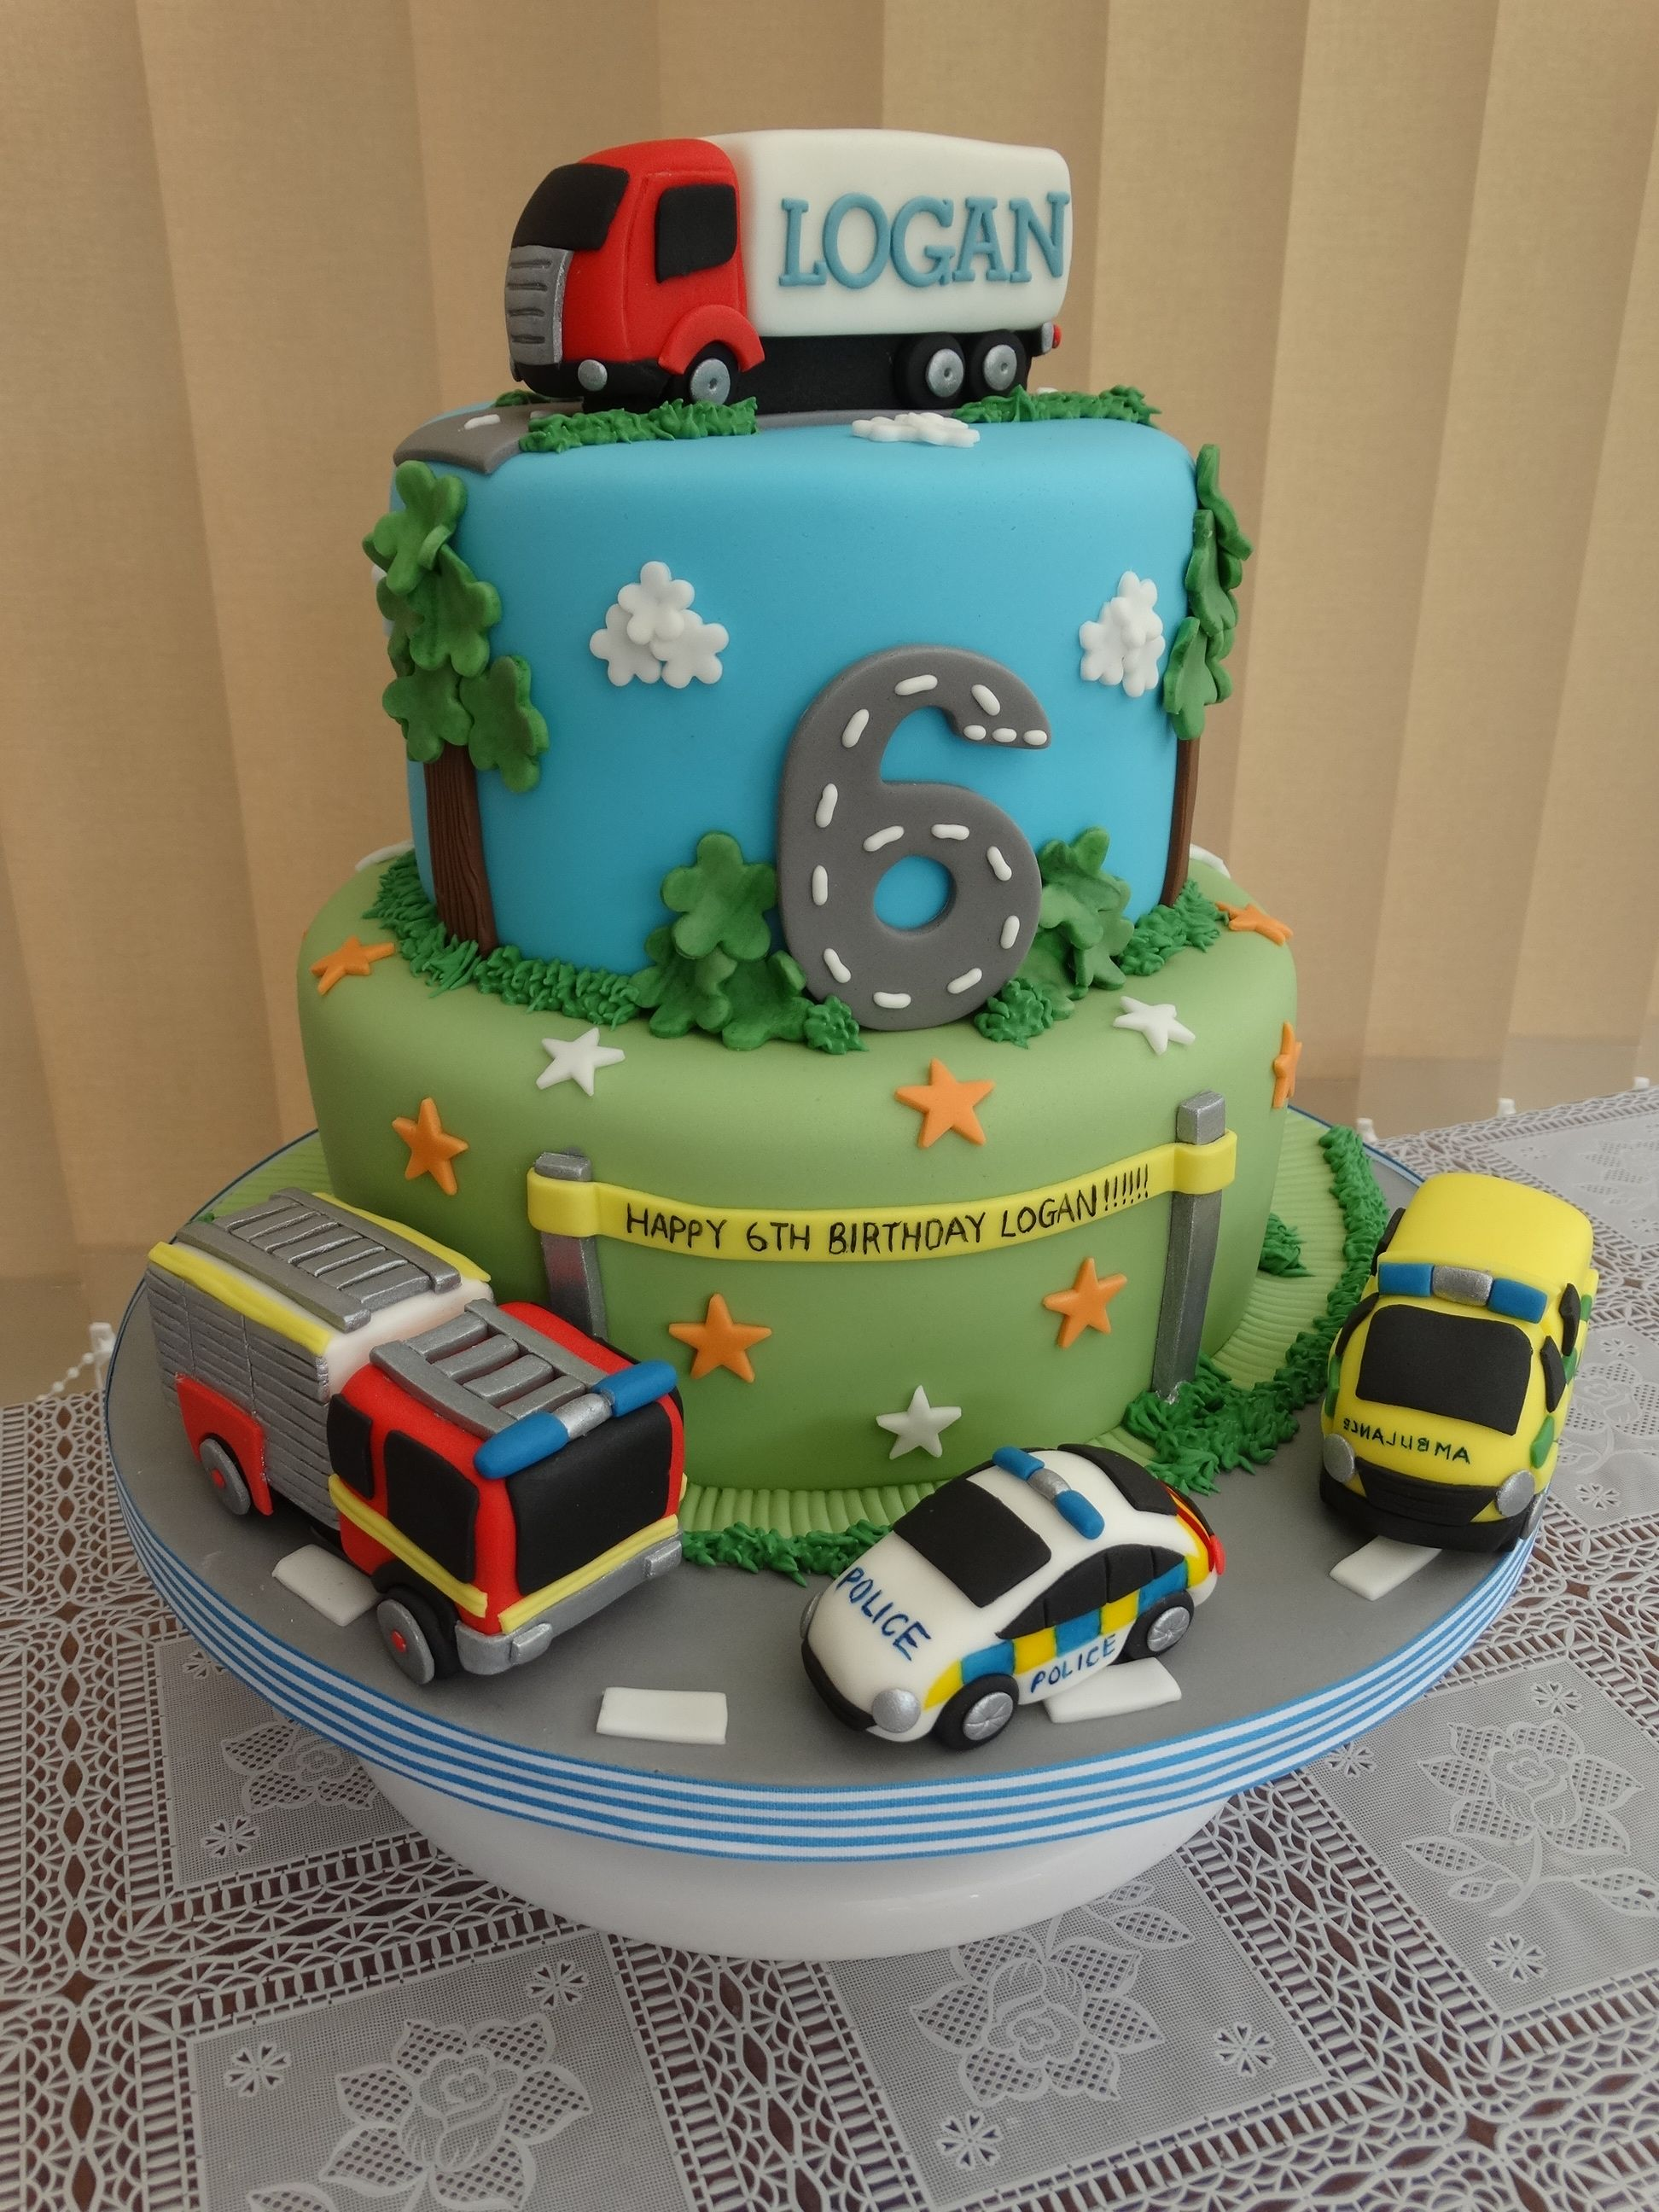 Emergency Services Vehicle And A Lorry Cake Xmcx Vinnys Birthday